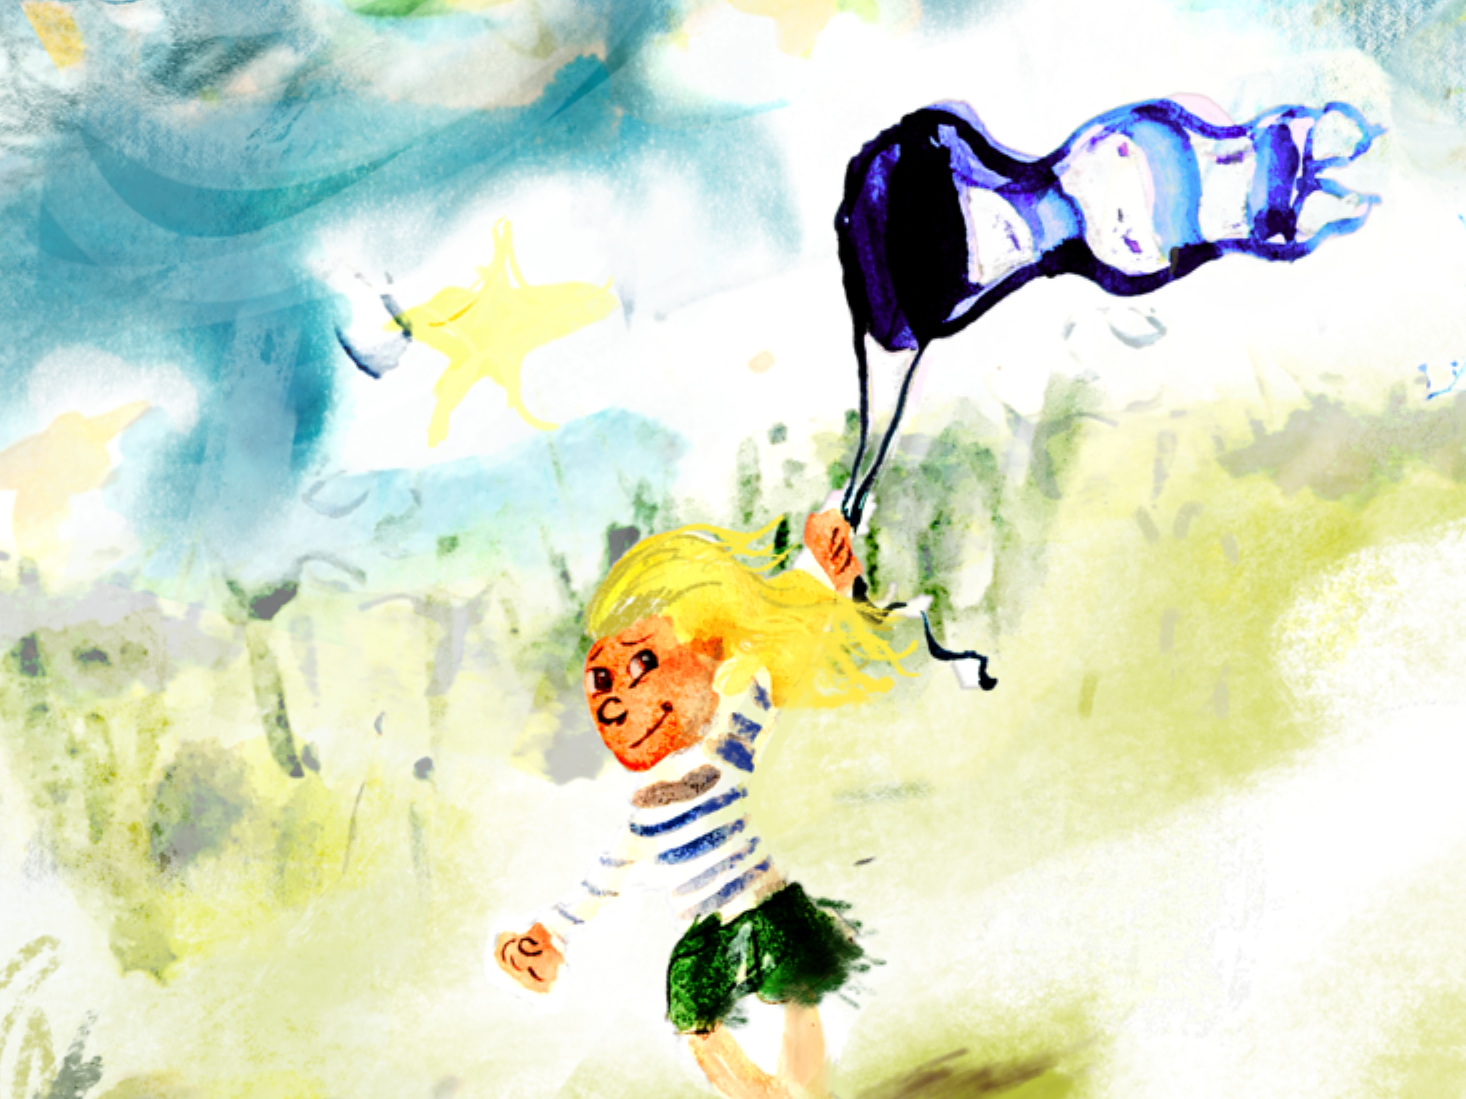 Kite Girl Wip kite picture book watercolour painting picturebook storybook children book illustration nursery nursery art childrens illustration character design childrens books childrens book character childrens book illustration kidlitartist kidlitart childrens illustration art drawing illustration